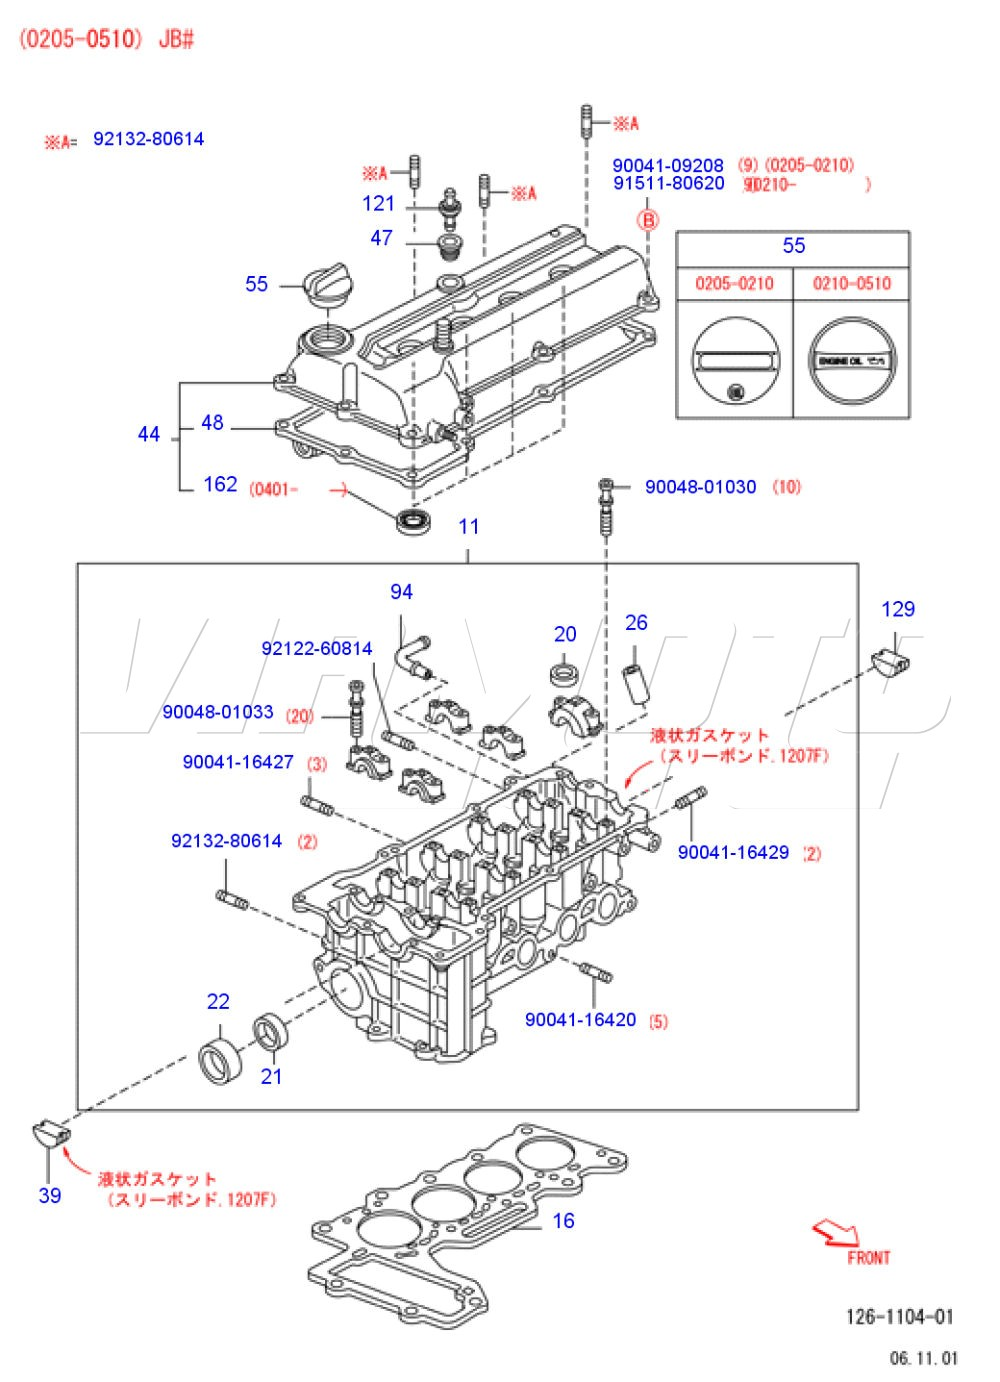 Daihatsu Sirion Diagram Residential Electrical Symbols Fuse Box Engine Find Wiring U2022 Rh Empcom Co